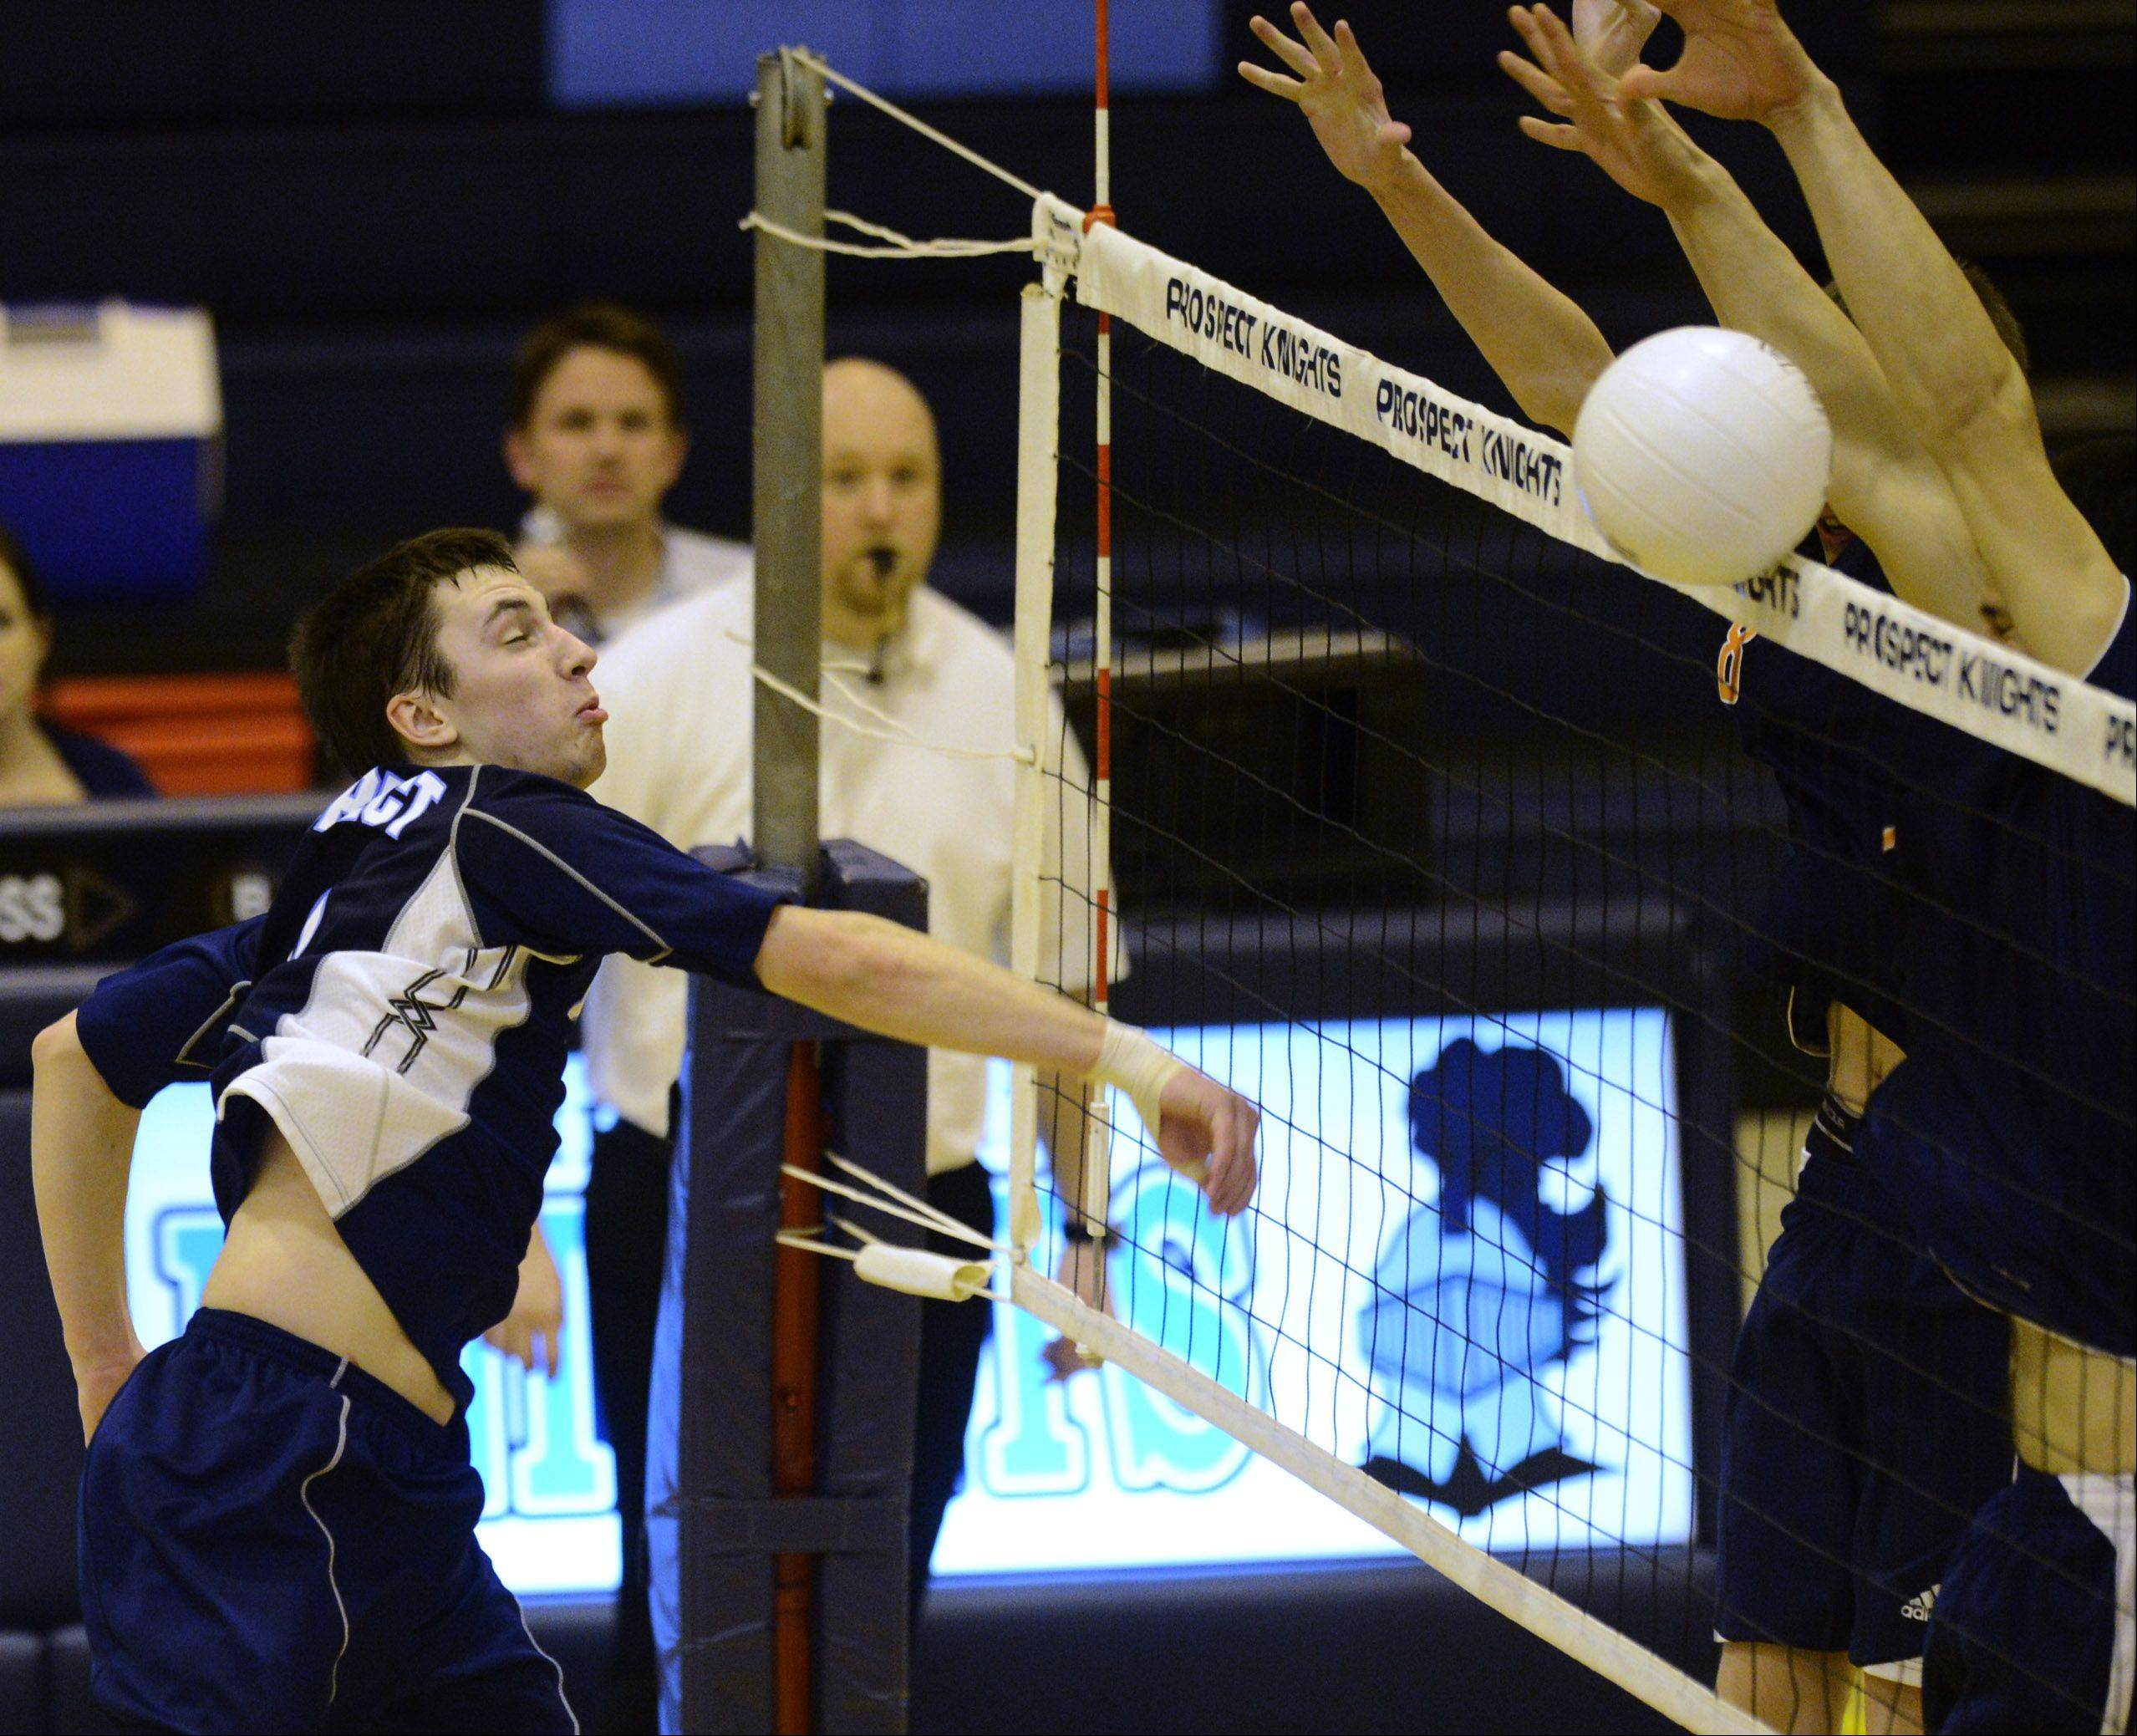 Prospect's Curtis Glennon hits a ball that gets blocked at the net by Buffalo Grove Tuesday.